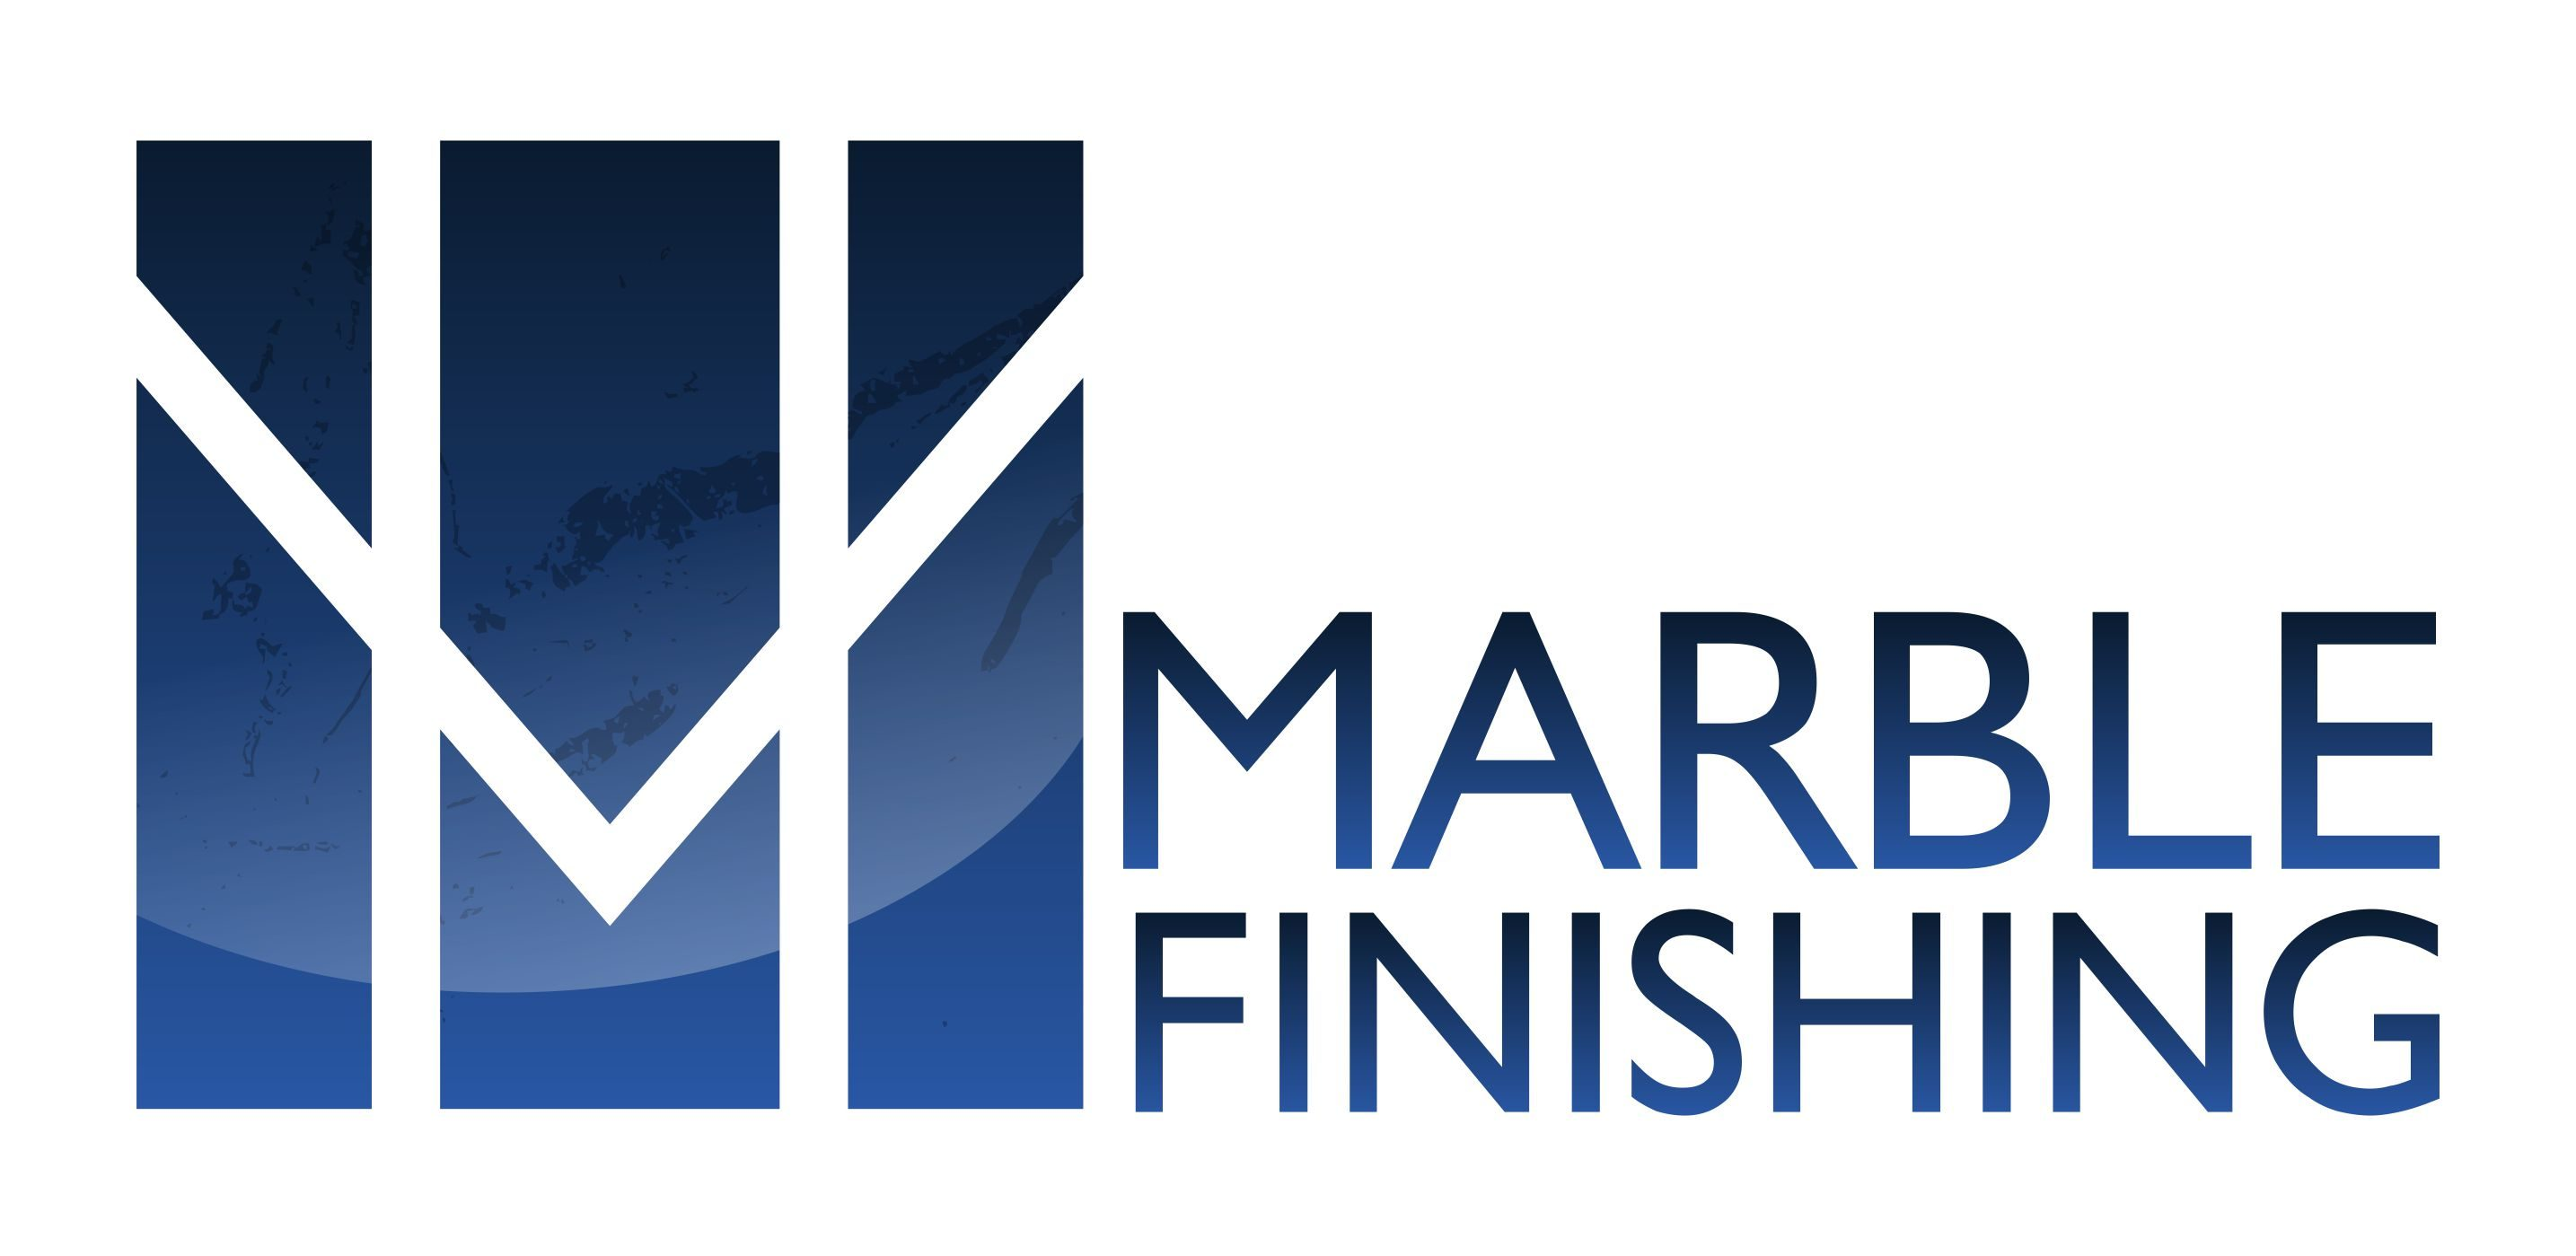 Marble Finishing, Reputed Floor Restoration Company Now Offering Direct Services to Homeowners and Businesses 1